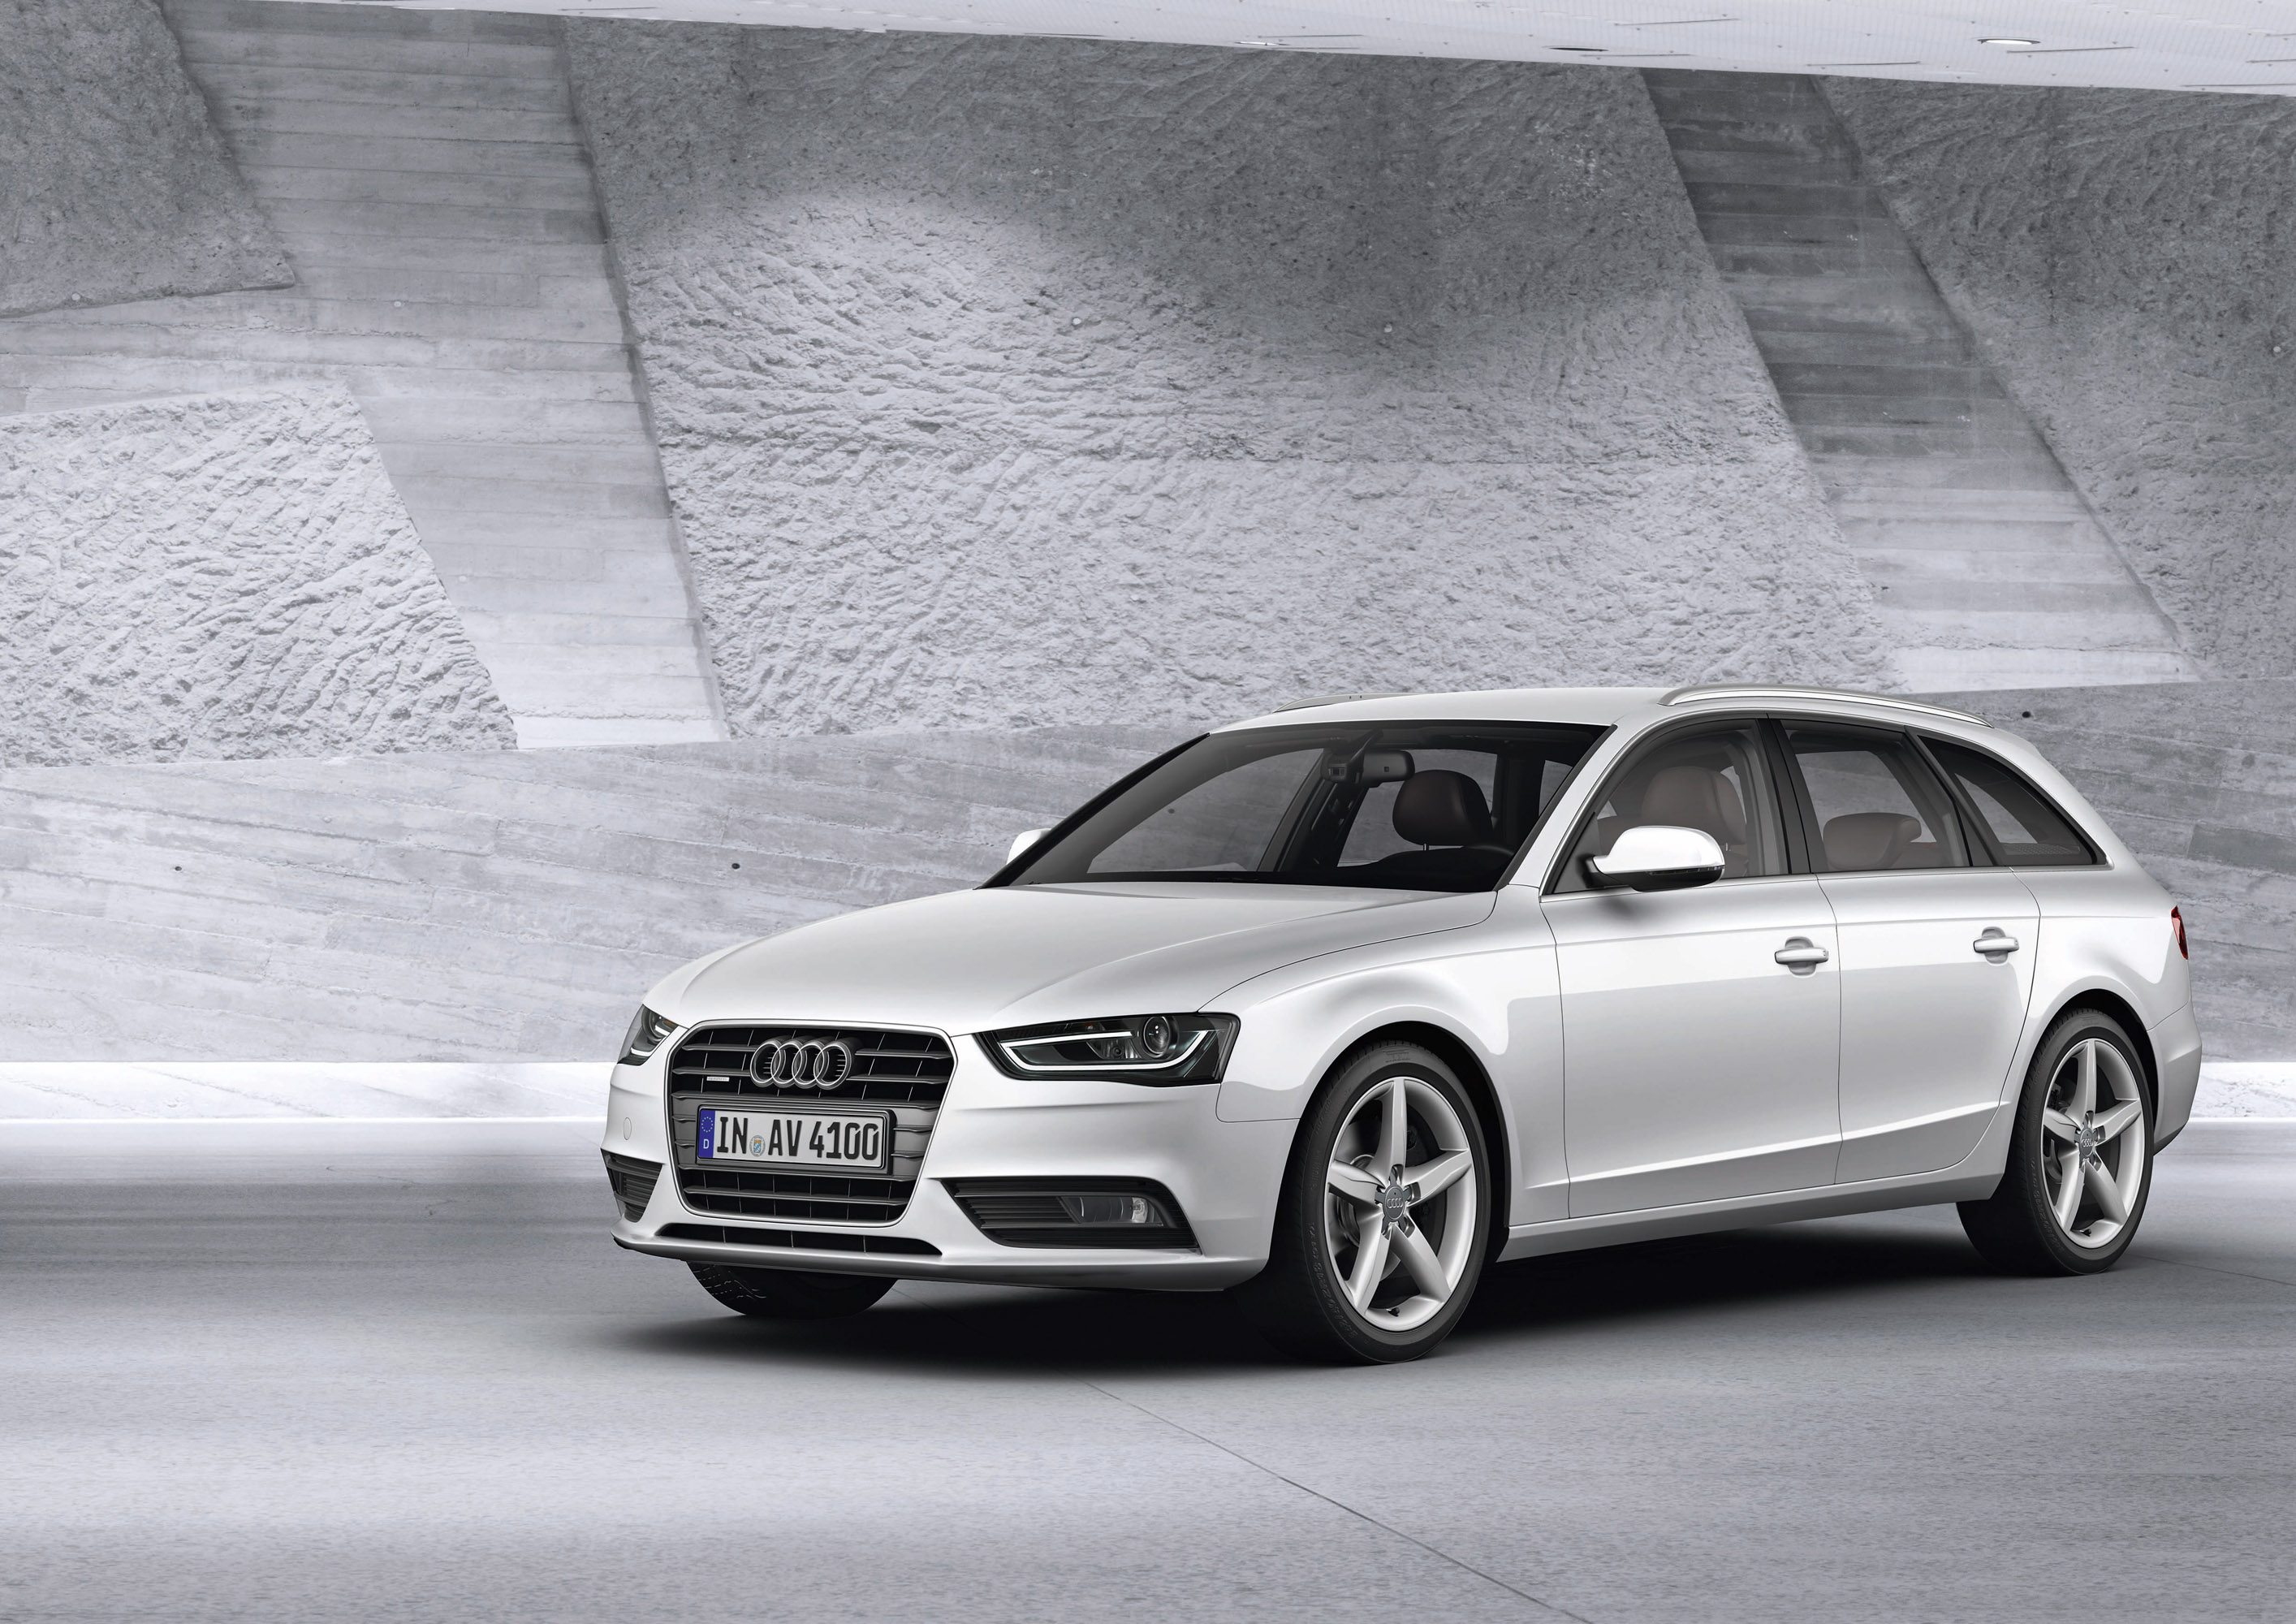 Used 2012 Audi A4 Pricing  For Sale  Edmunds